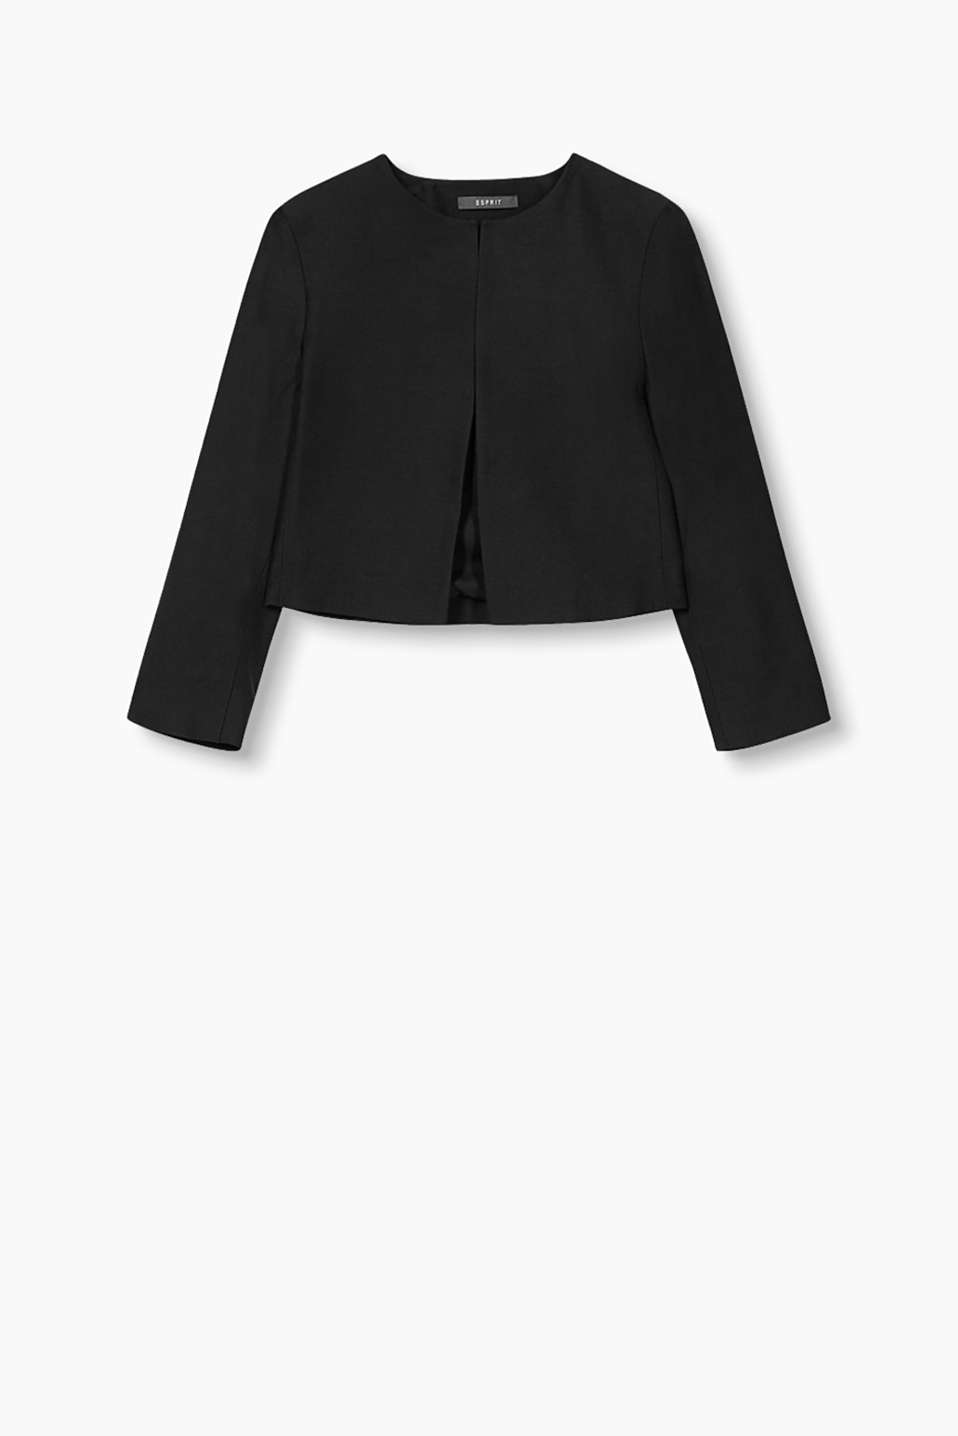 This short open front blazer chic companion for special occasions and a smart business piece!